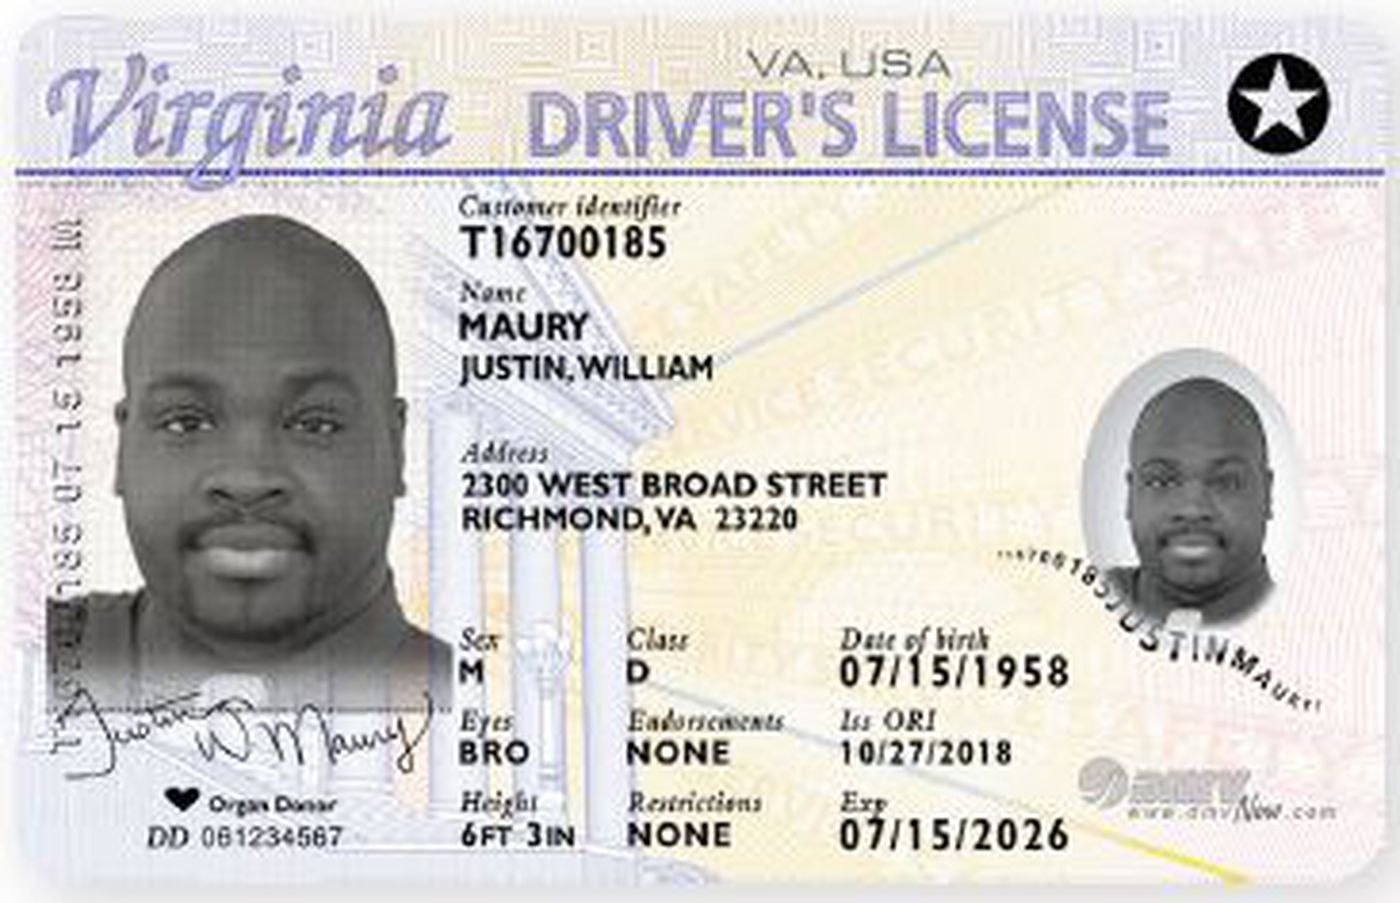 A REAL ID compliant Virginia driver's license.